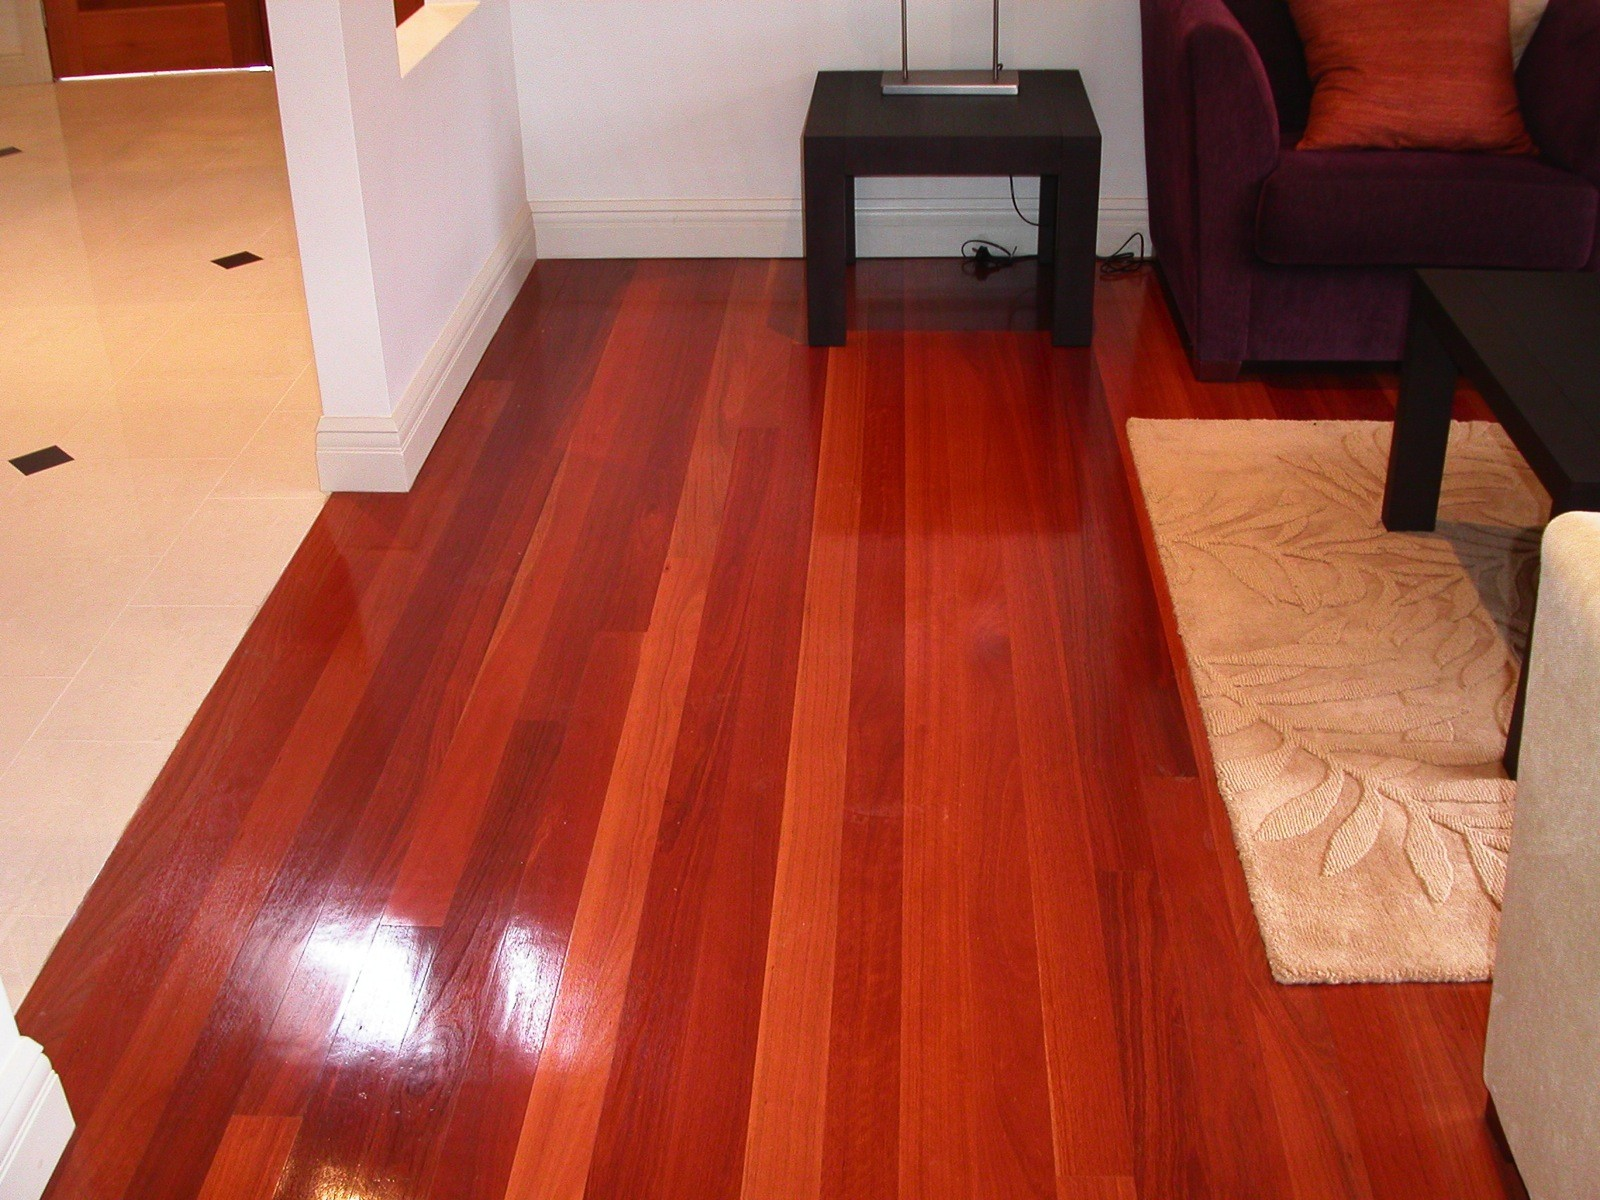 Red Gum timber flooring supplied and installed by Timber Floors Pty Ltd